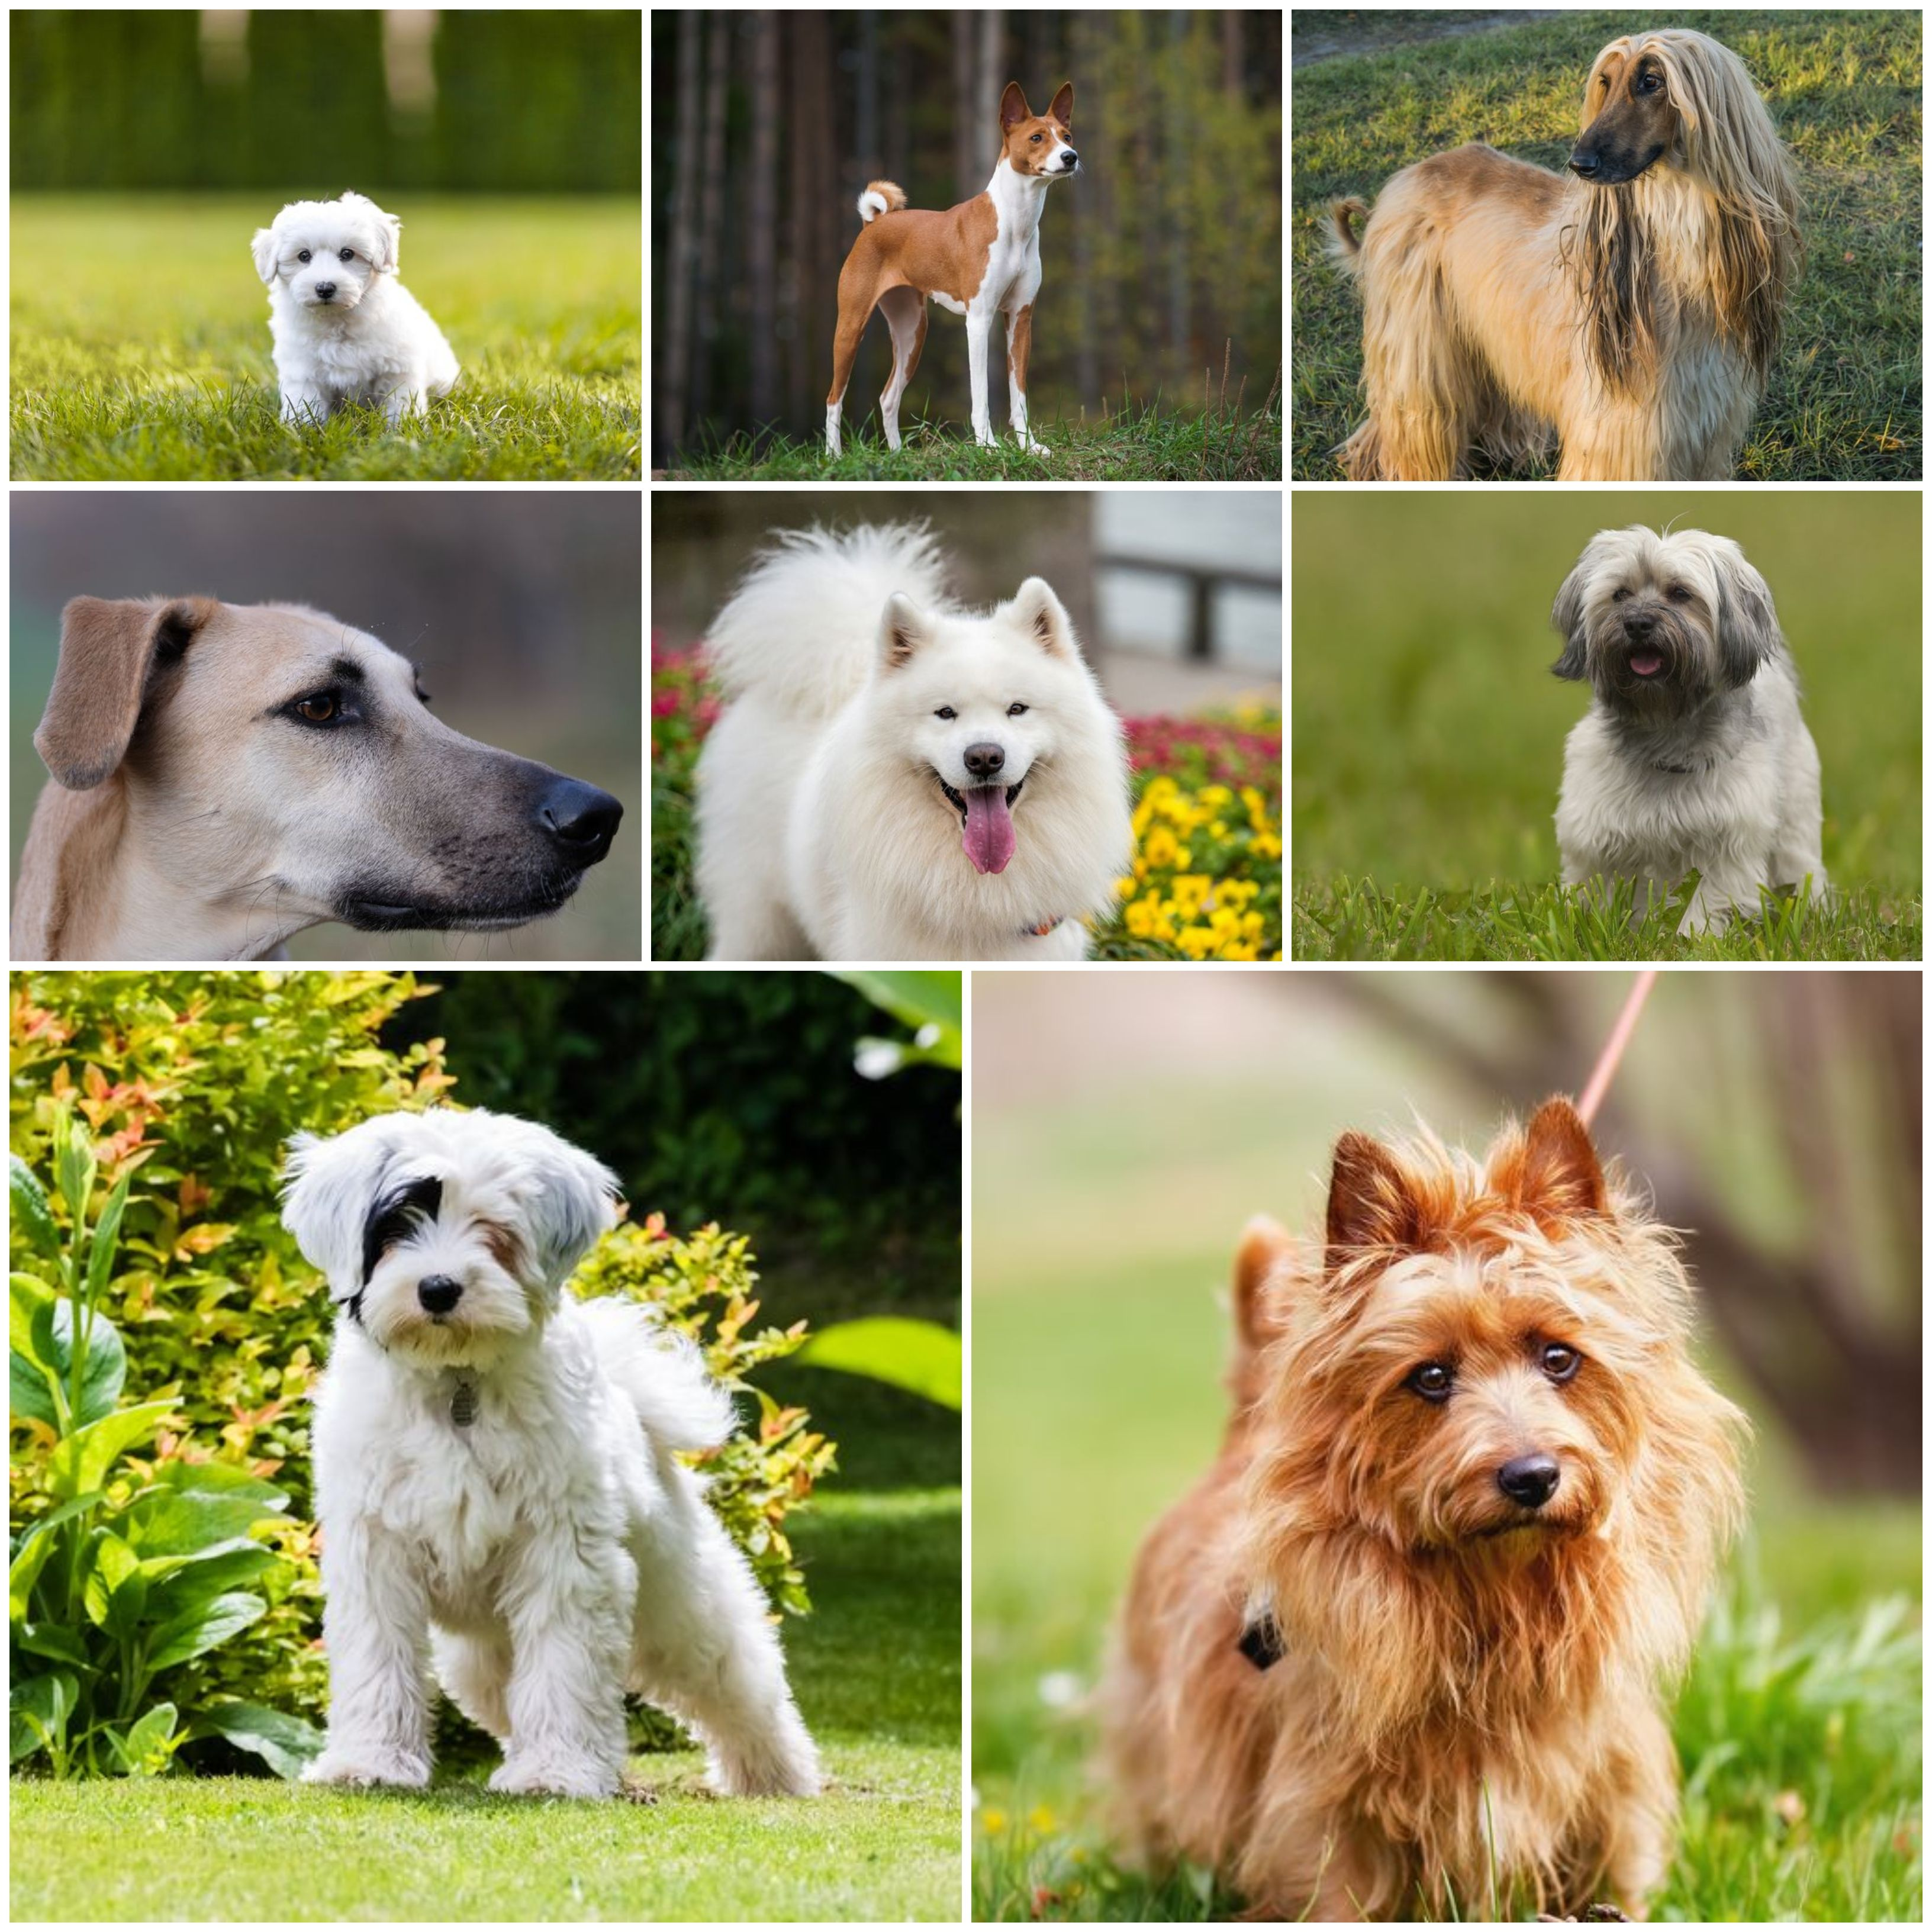 8 Dog Breeds With Exotic Origins